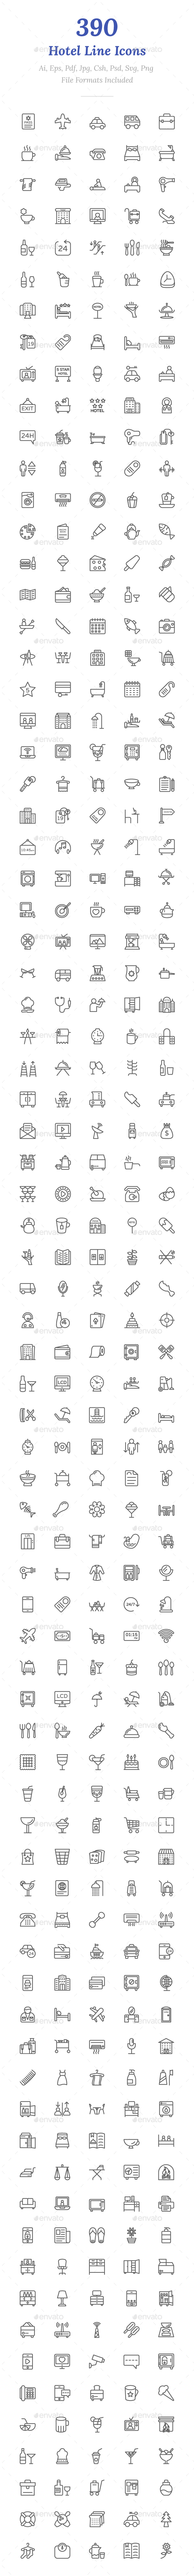 390 Hotel Line Icons - Icons